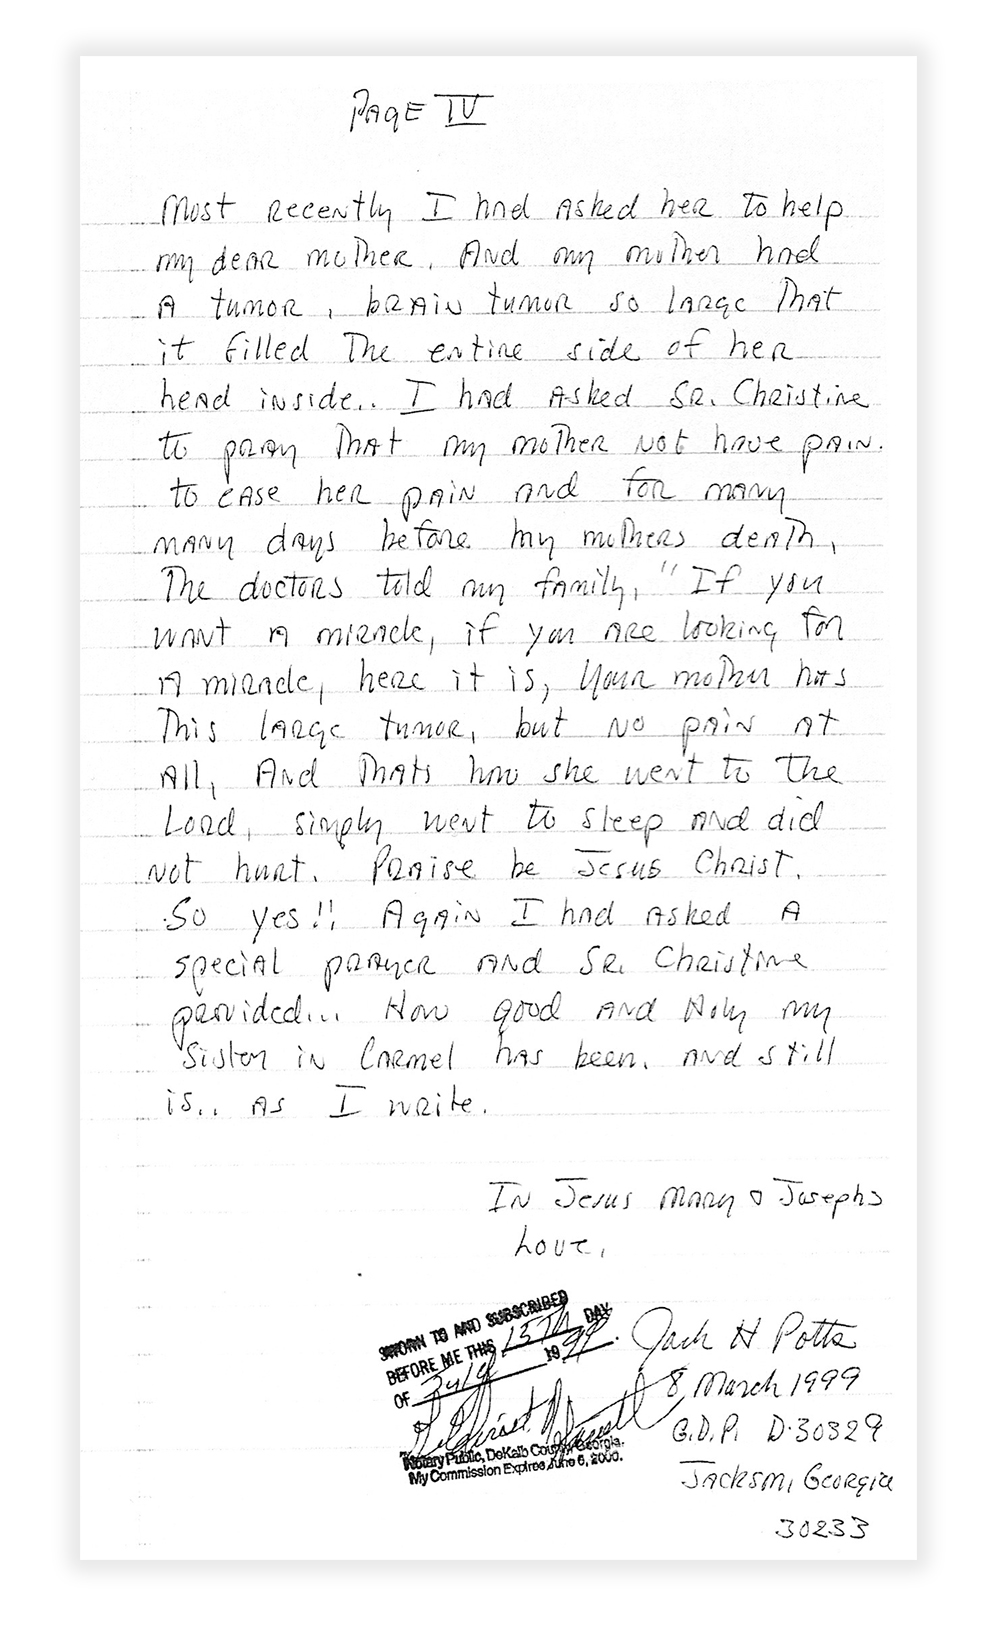 frances nevins miracle jack potts letter